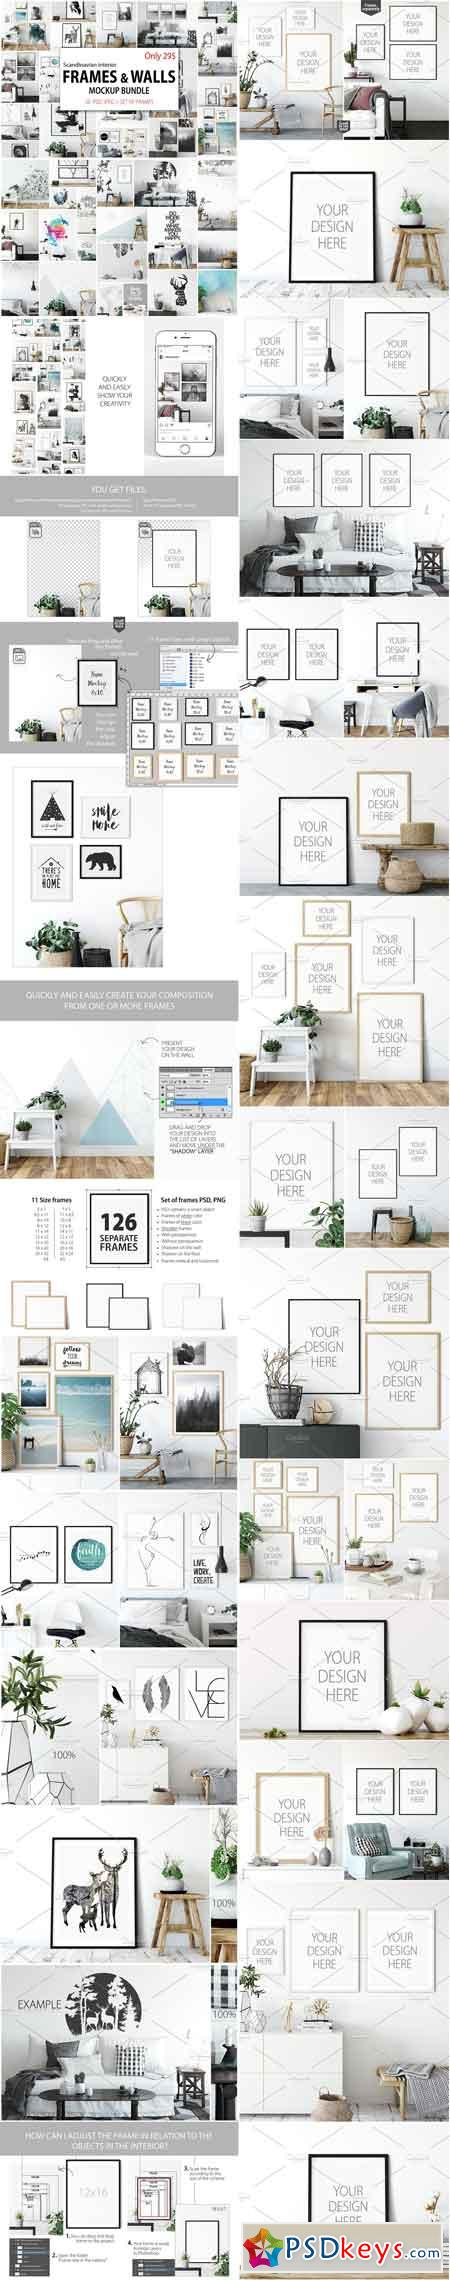 Frames & Walls Scandinavian Bundle 2984522